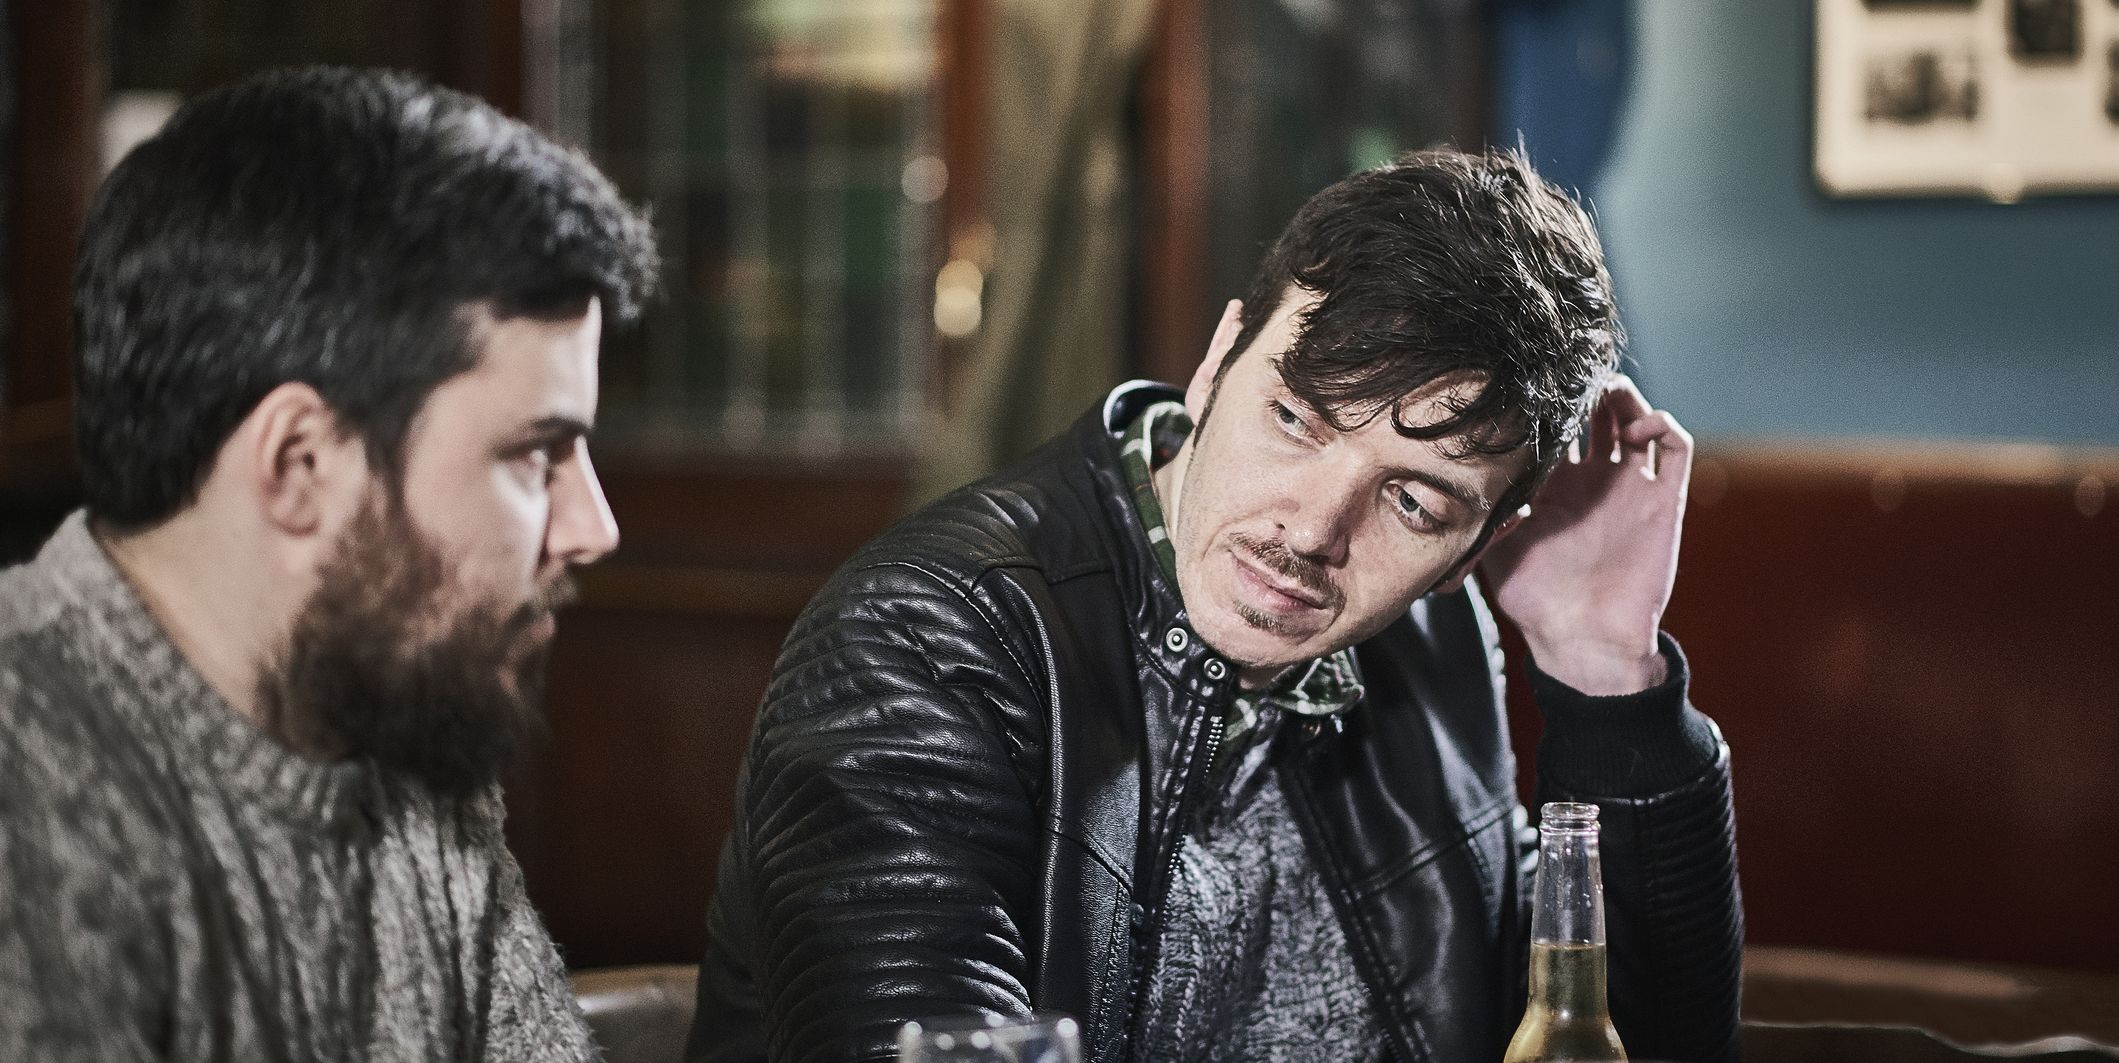 Two friends drinking together in a traditional British pub.